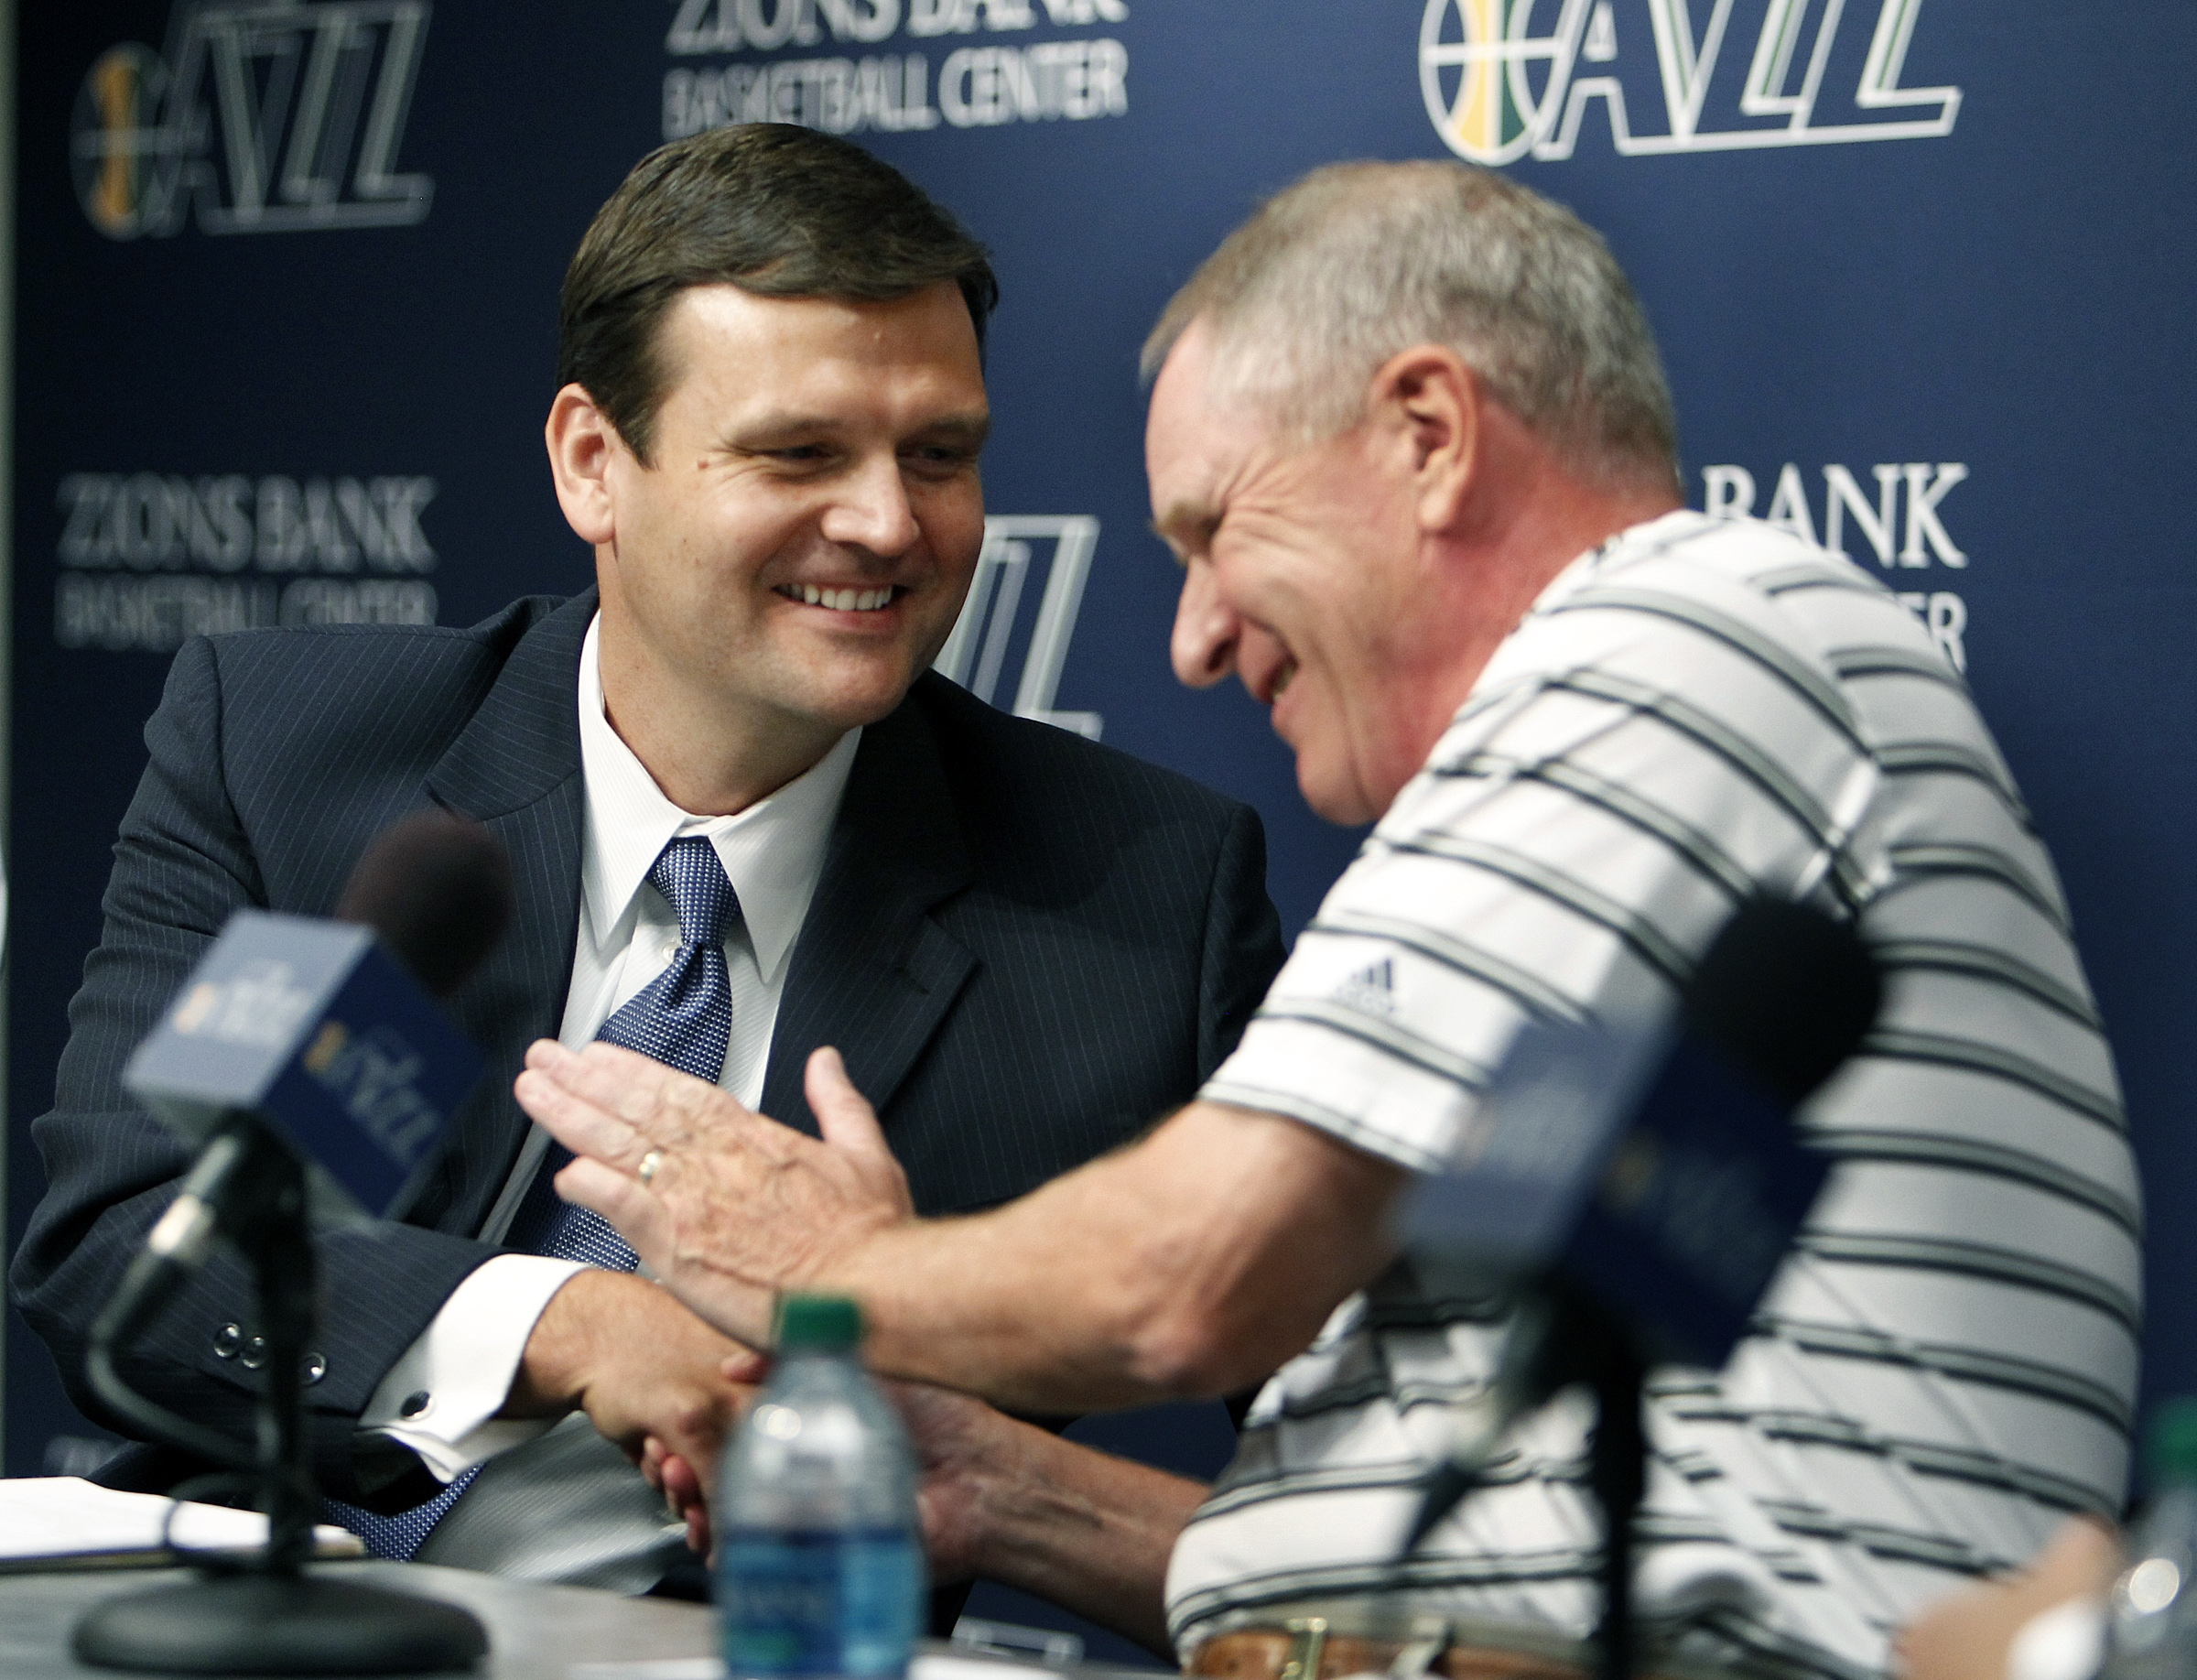 Kevin O'Connor, right, Executive Vice President of Basketball Operations for the Utah Jazz, shakes hands with Dennis Lindsey as Lindsey is introduced as the team's general manager at the Zions Bank Basketball Center in Salt Lake City, Tuesday, Aug. 7, 2012.